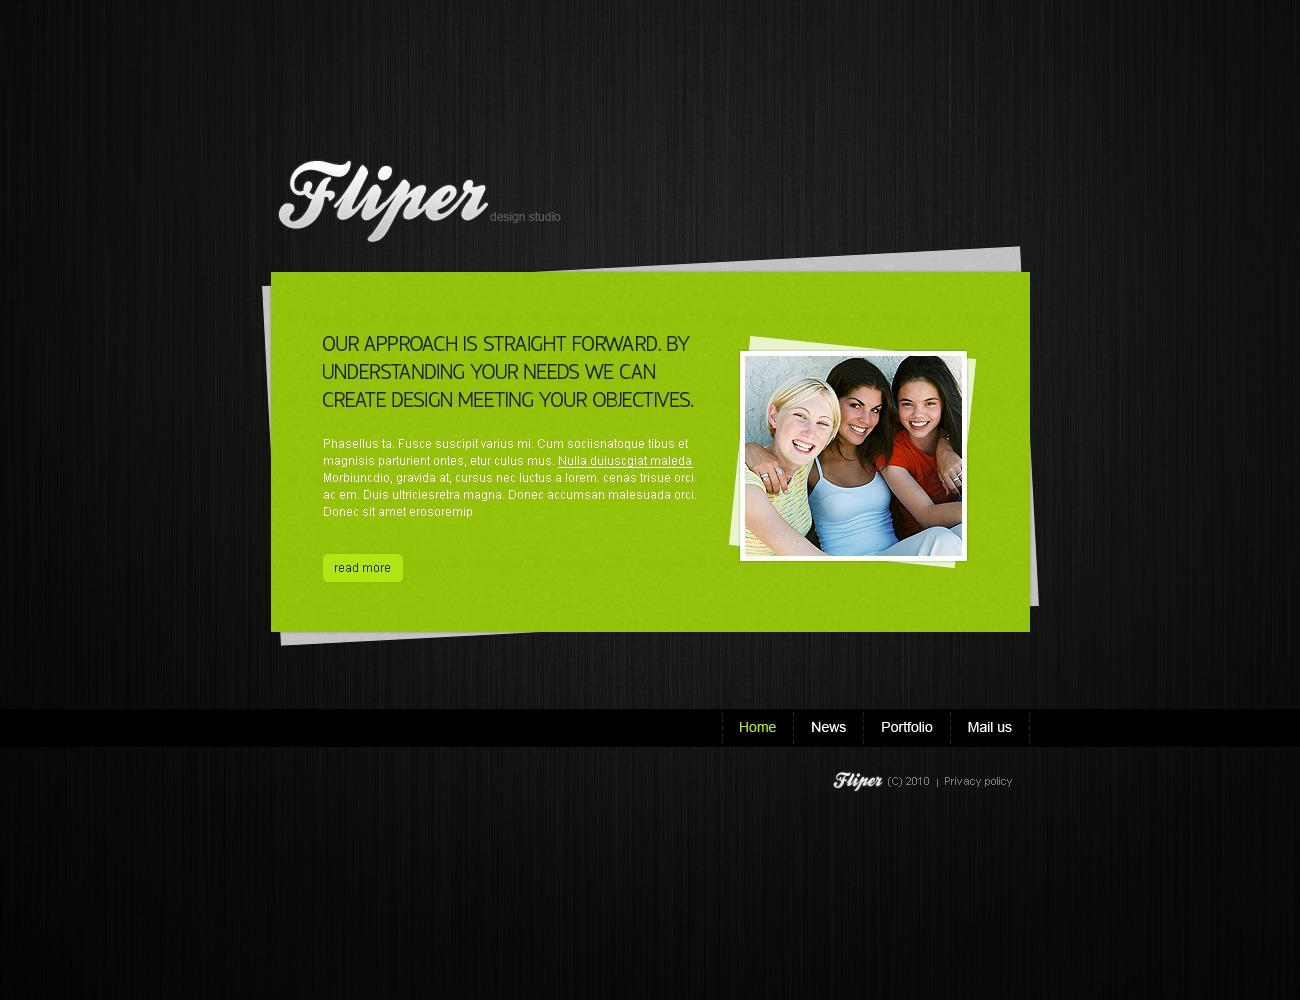 The Fliper Design Studio PSD Design 54395, one of the best PSD templates of its kind (web design, wide, jquery), also known as fliper design studio PSD template, creative art gallery PSD template, artists PSD template, painting PSD template, painters PSD template, web development PSD template, webmasters PSD template, designers PSD template, internet PSD template, www PSD template, sites PSD template, web design PSD template, webpage PSD template, personal portfolio and related with fliper design studio, creative art gallery, artists, painting, painters, web development, webmasters, designers, internet, www, sites, web design, webpage, personal portfolio, etc.